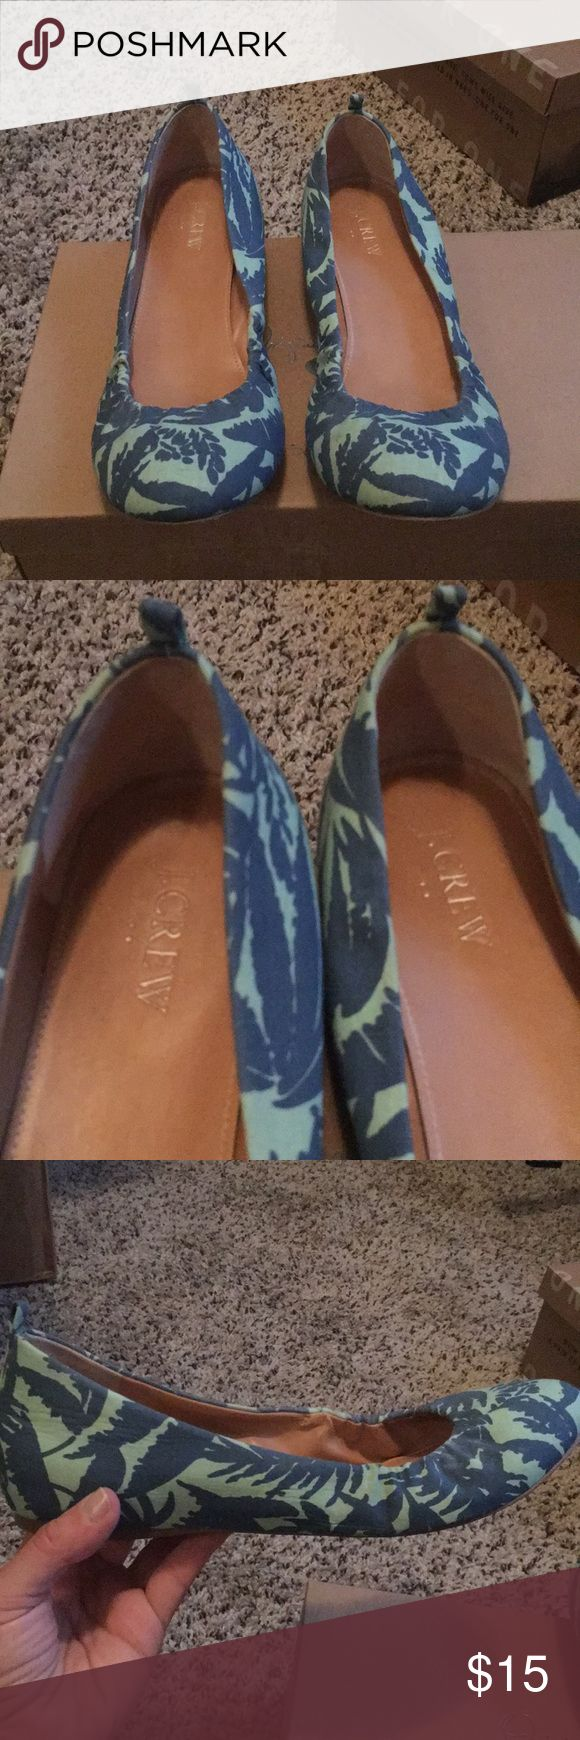 J. Crew flats. Like new Blue and teal flats, only worn a few times. Super cute J. Crew Shoes Flats & Loafers